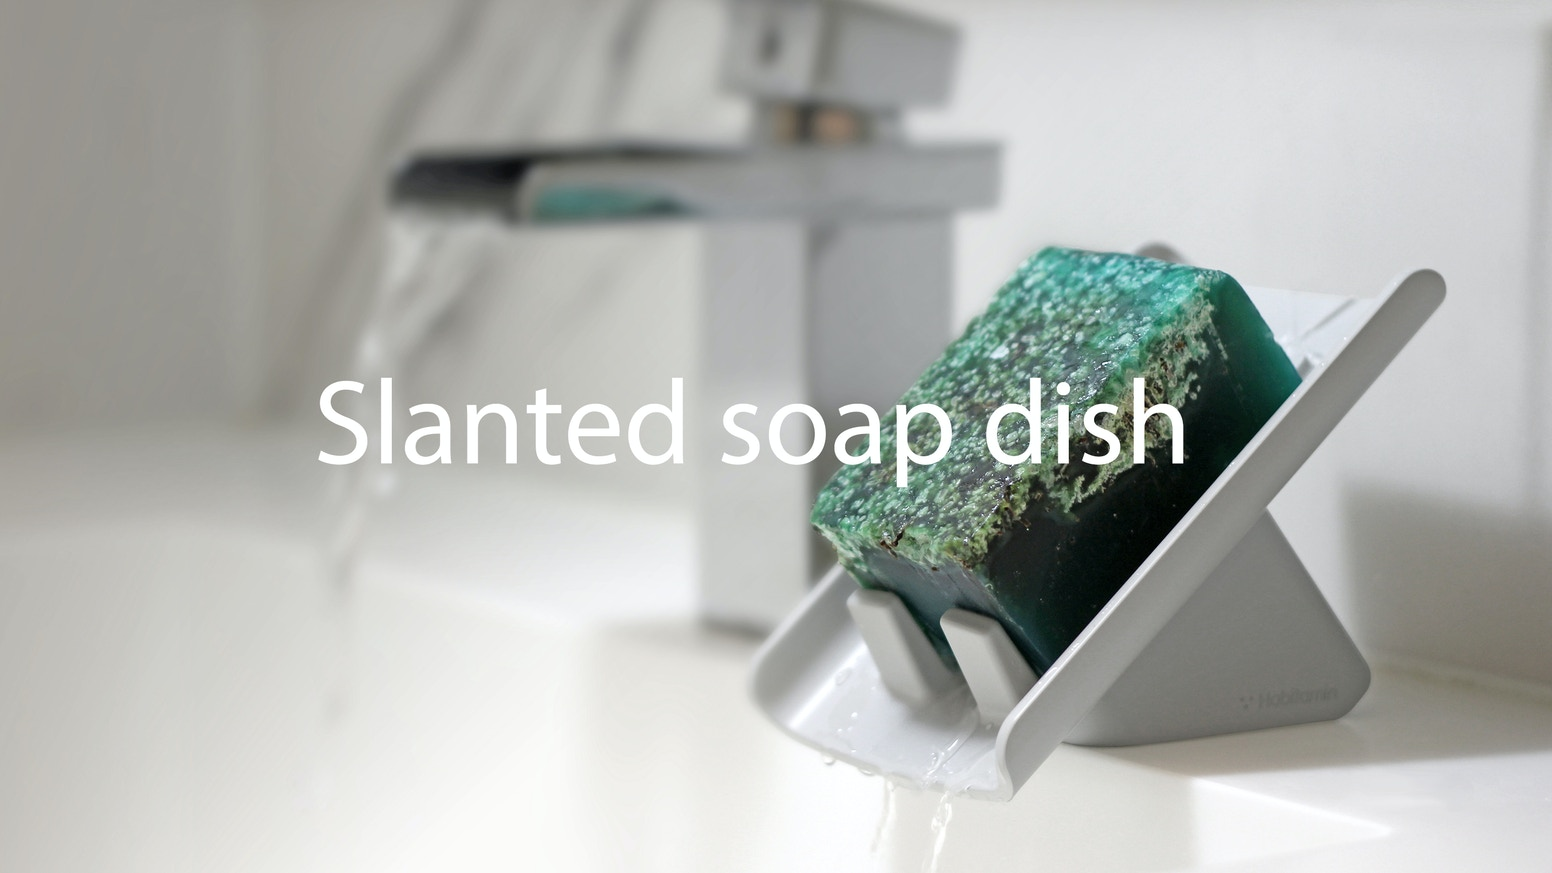 Waterfall, slanted soap saver drains water into a sink perfectly, dries a soap fast, and keep the bathroom and sink area clean.